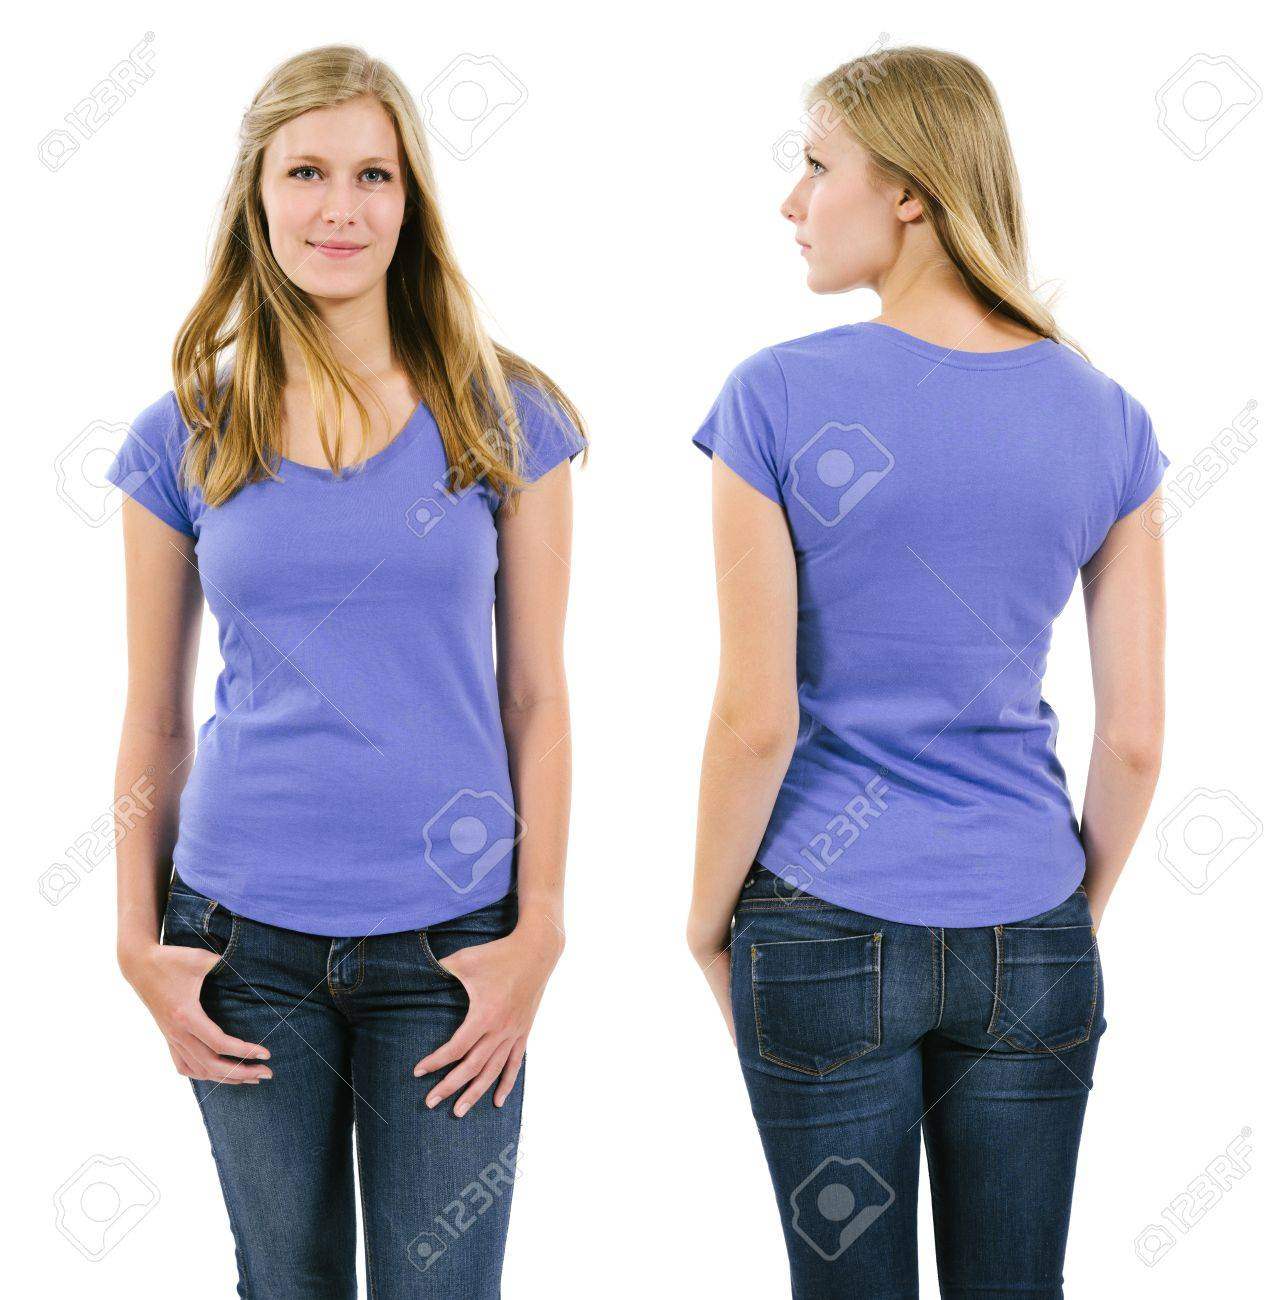 Photo of a young adult female posing with a blank purple shirt.  Front and back views ready for your artwork or designs. Stock Photo - 21145400